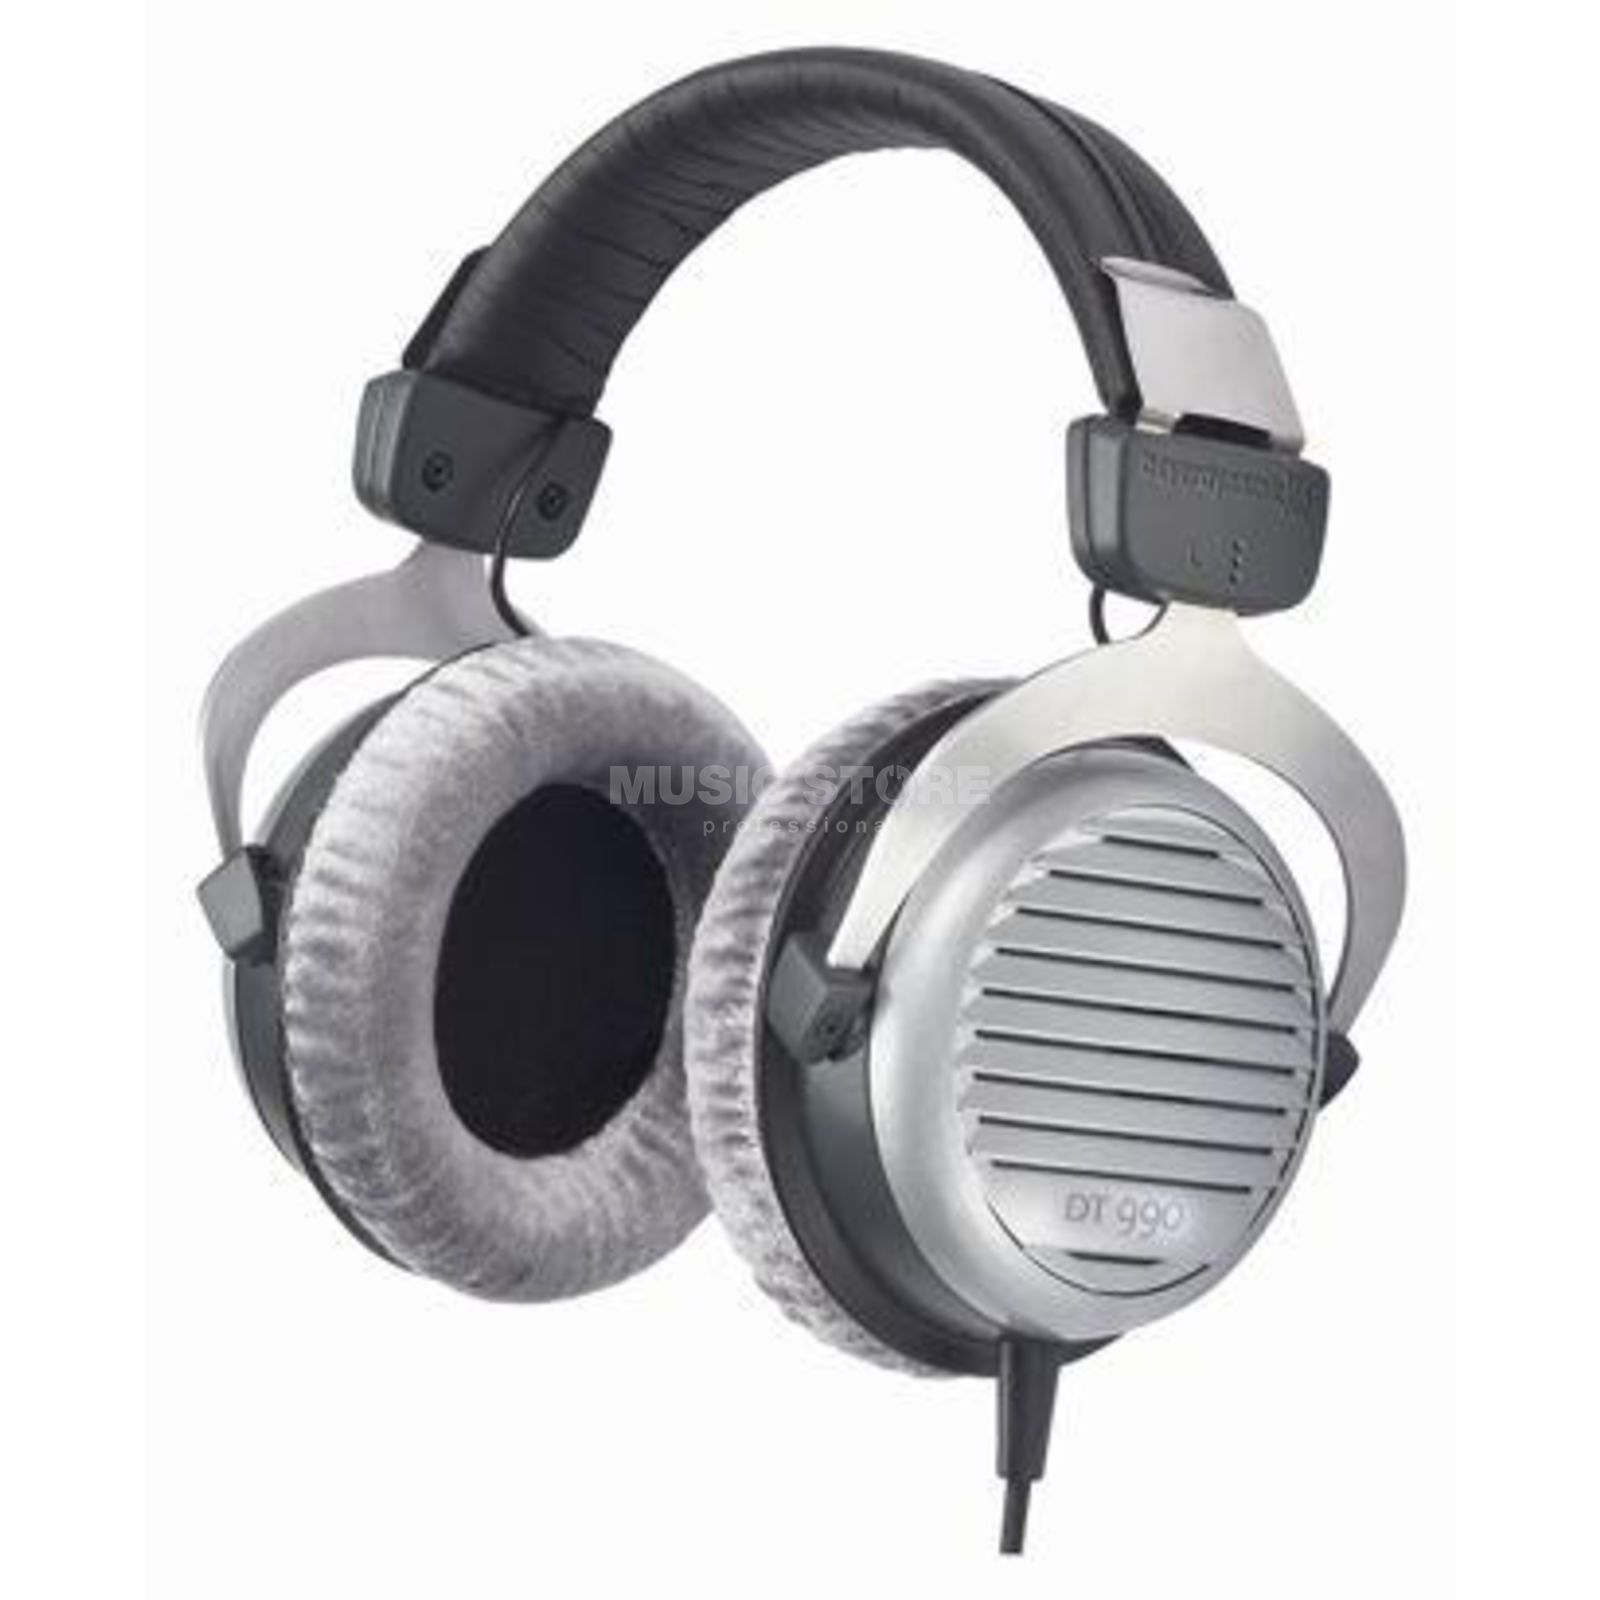 Beyerdynamic DT 990 Edition 250 Ohm Premium Headphones - Open Produktbillede